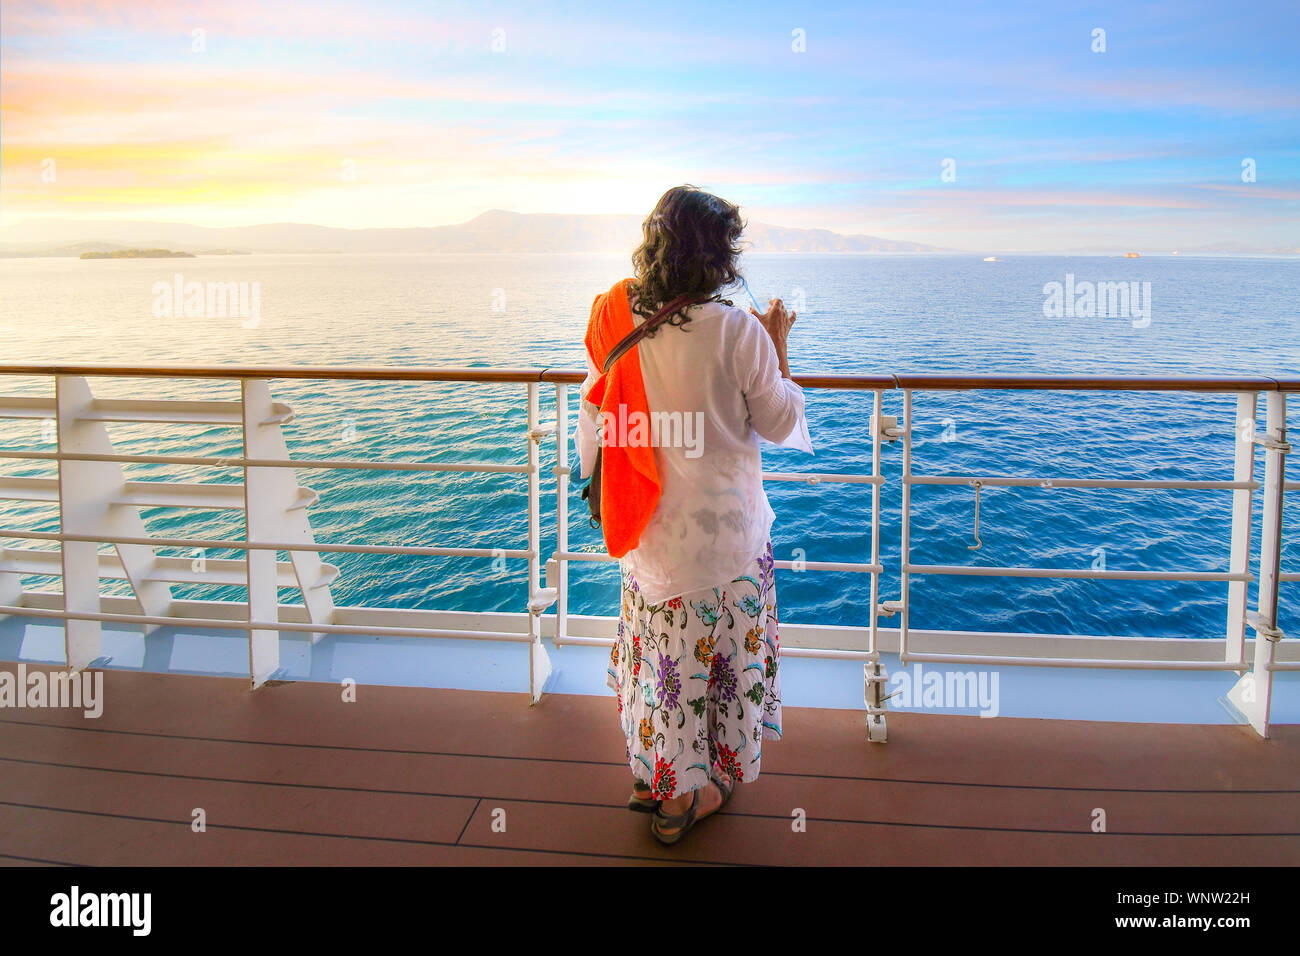 A woman sips a drink on the deck of a cruise ship as the sun sets and the ship passes islands on the Aegean Sea Stock Photo